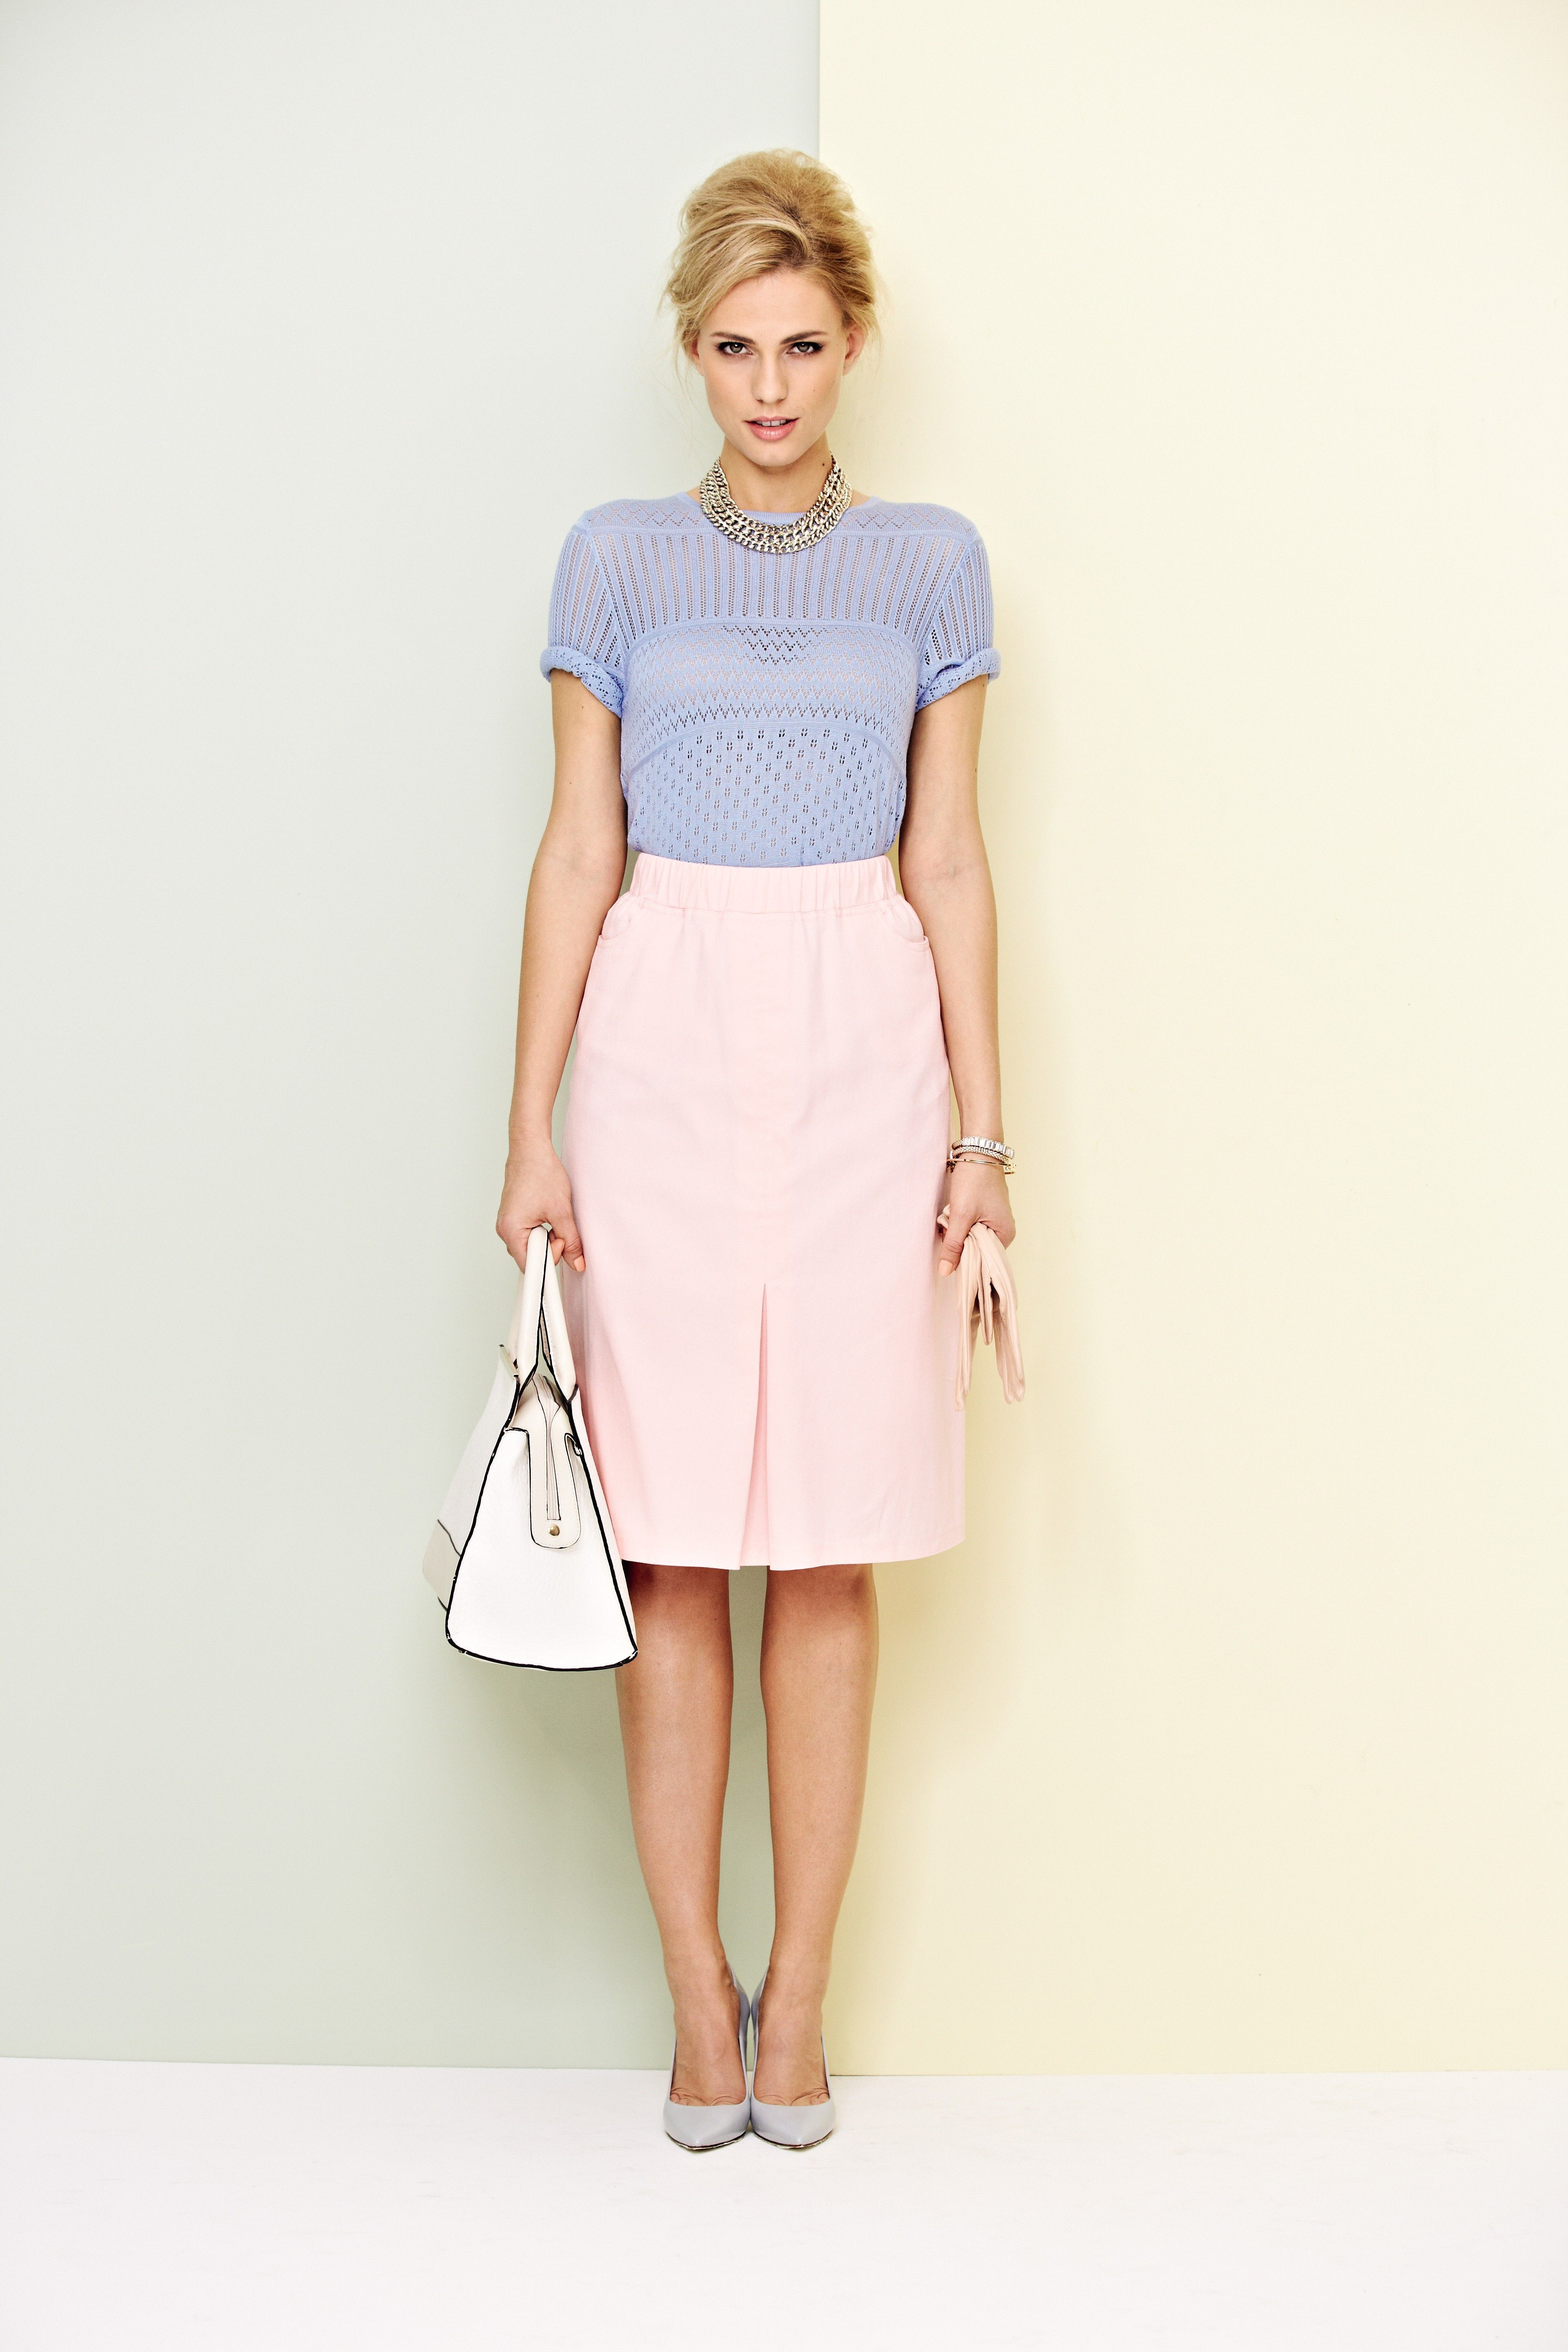 Damart Sky Stripe Sweater And Rose Pull On Skirt Www Damart Co Uk Womens Skirt Skirts Stripe Sweater